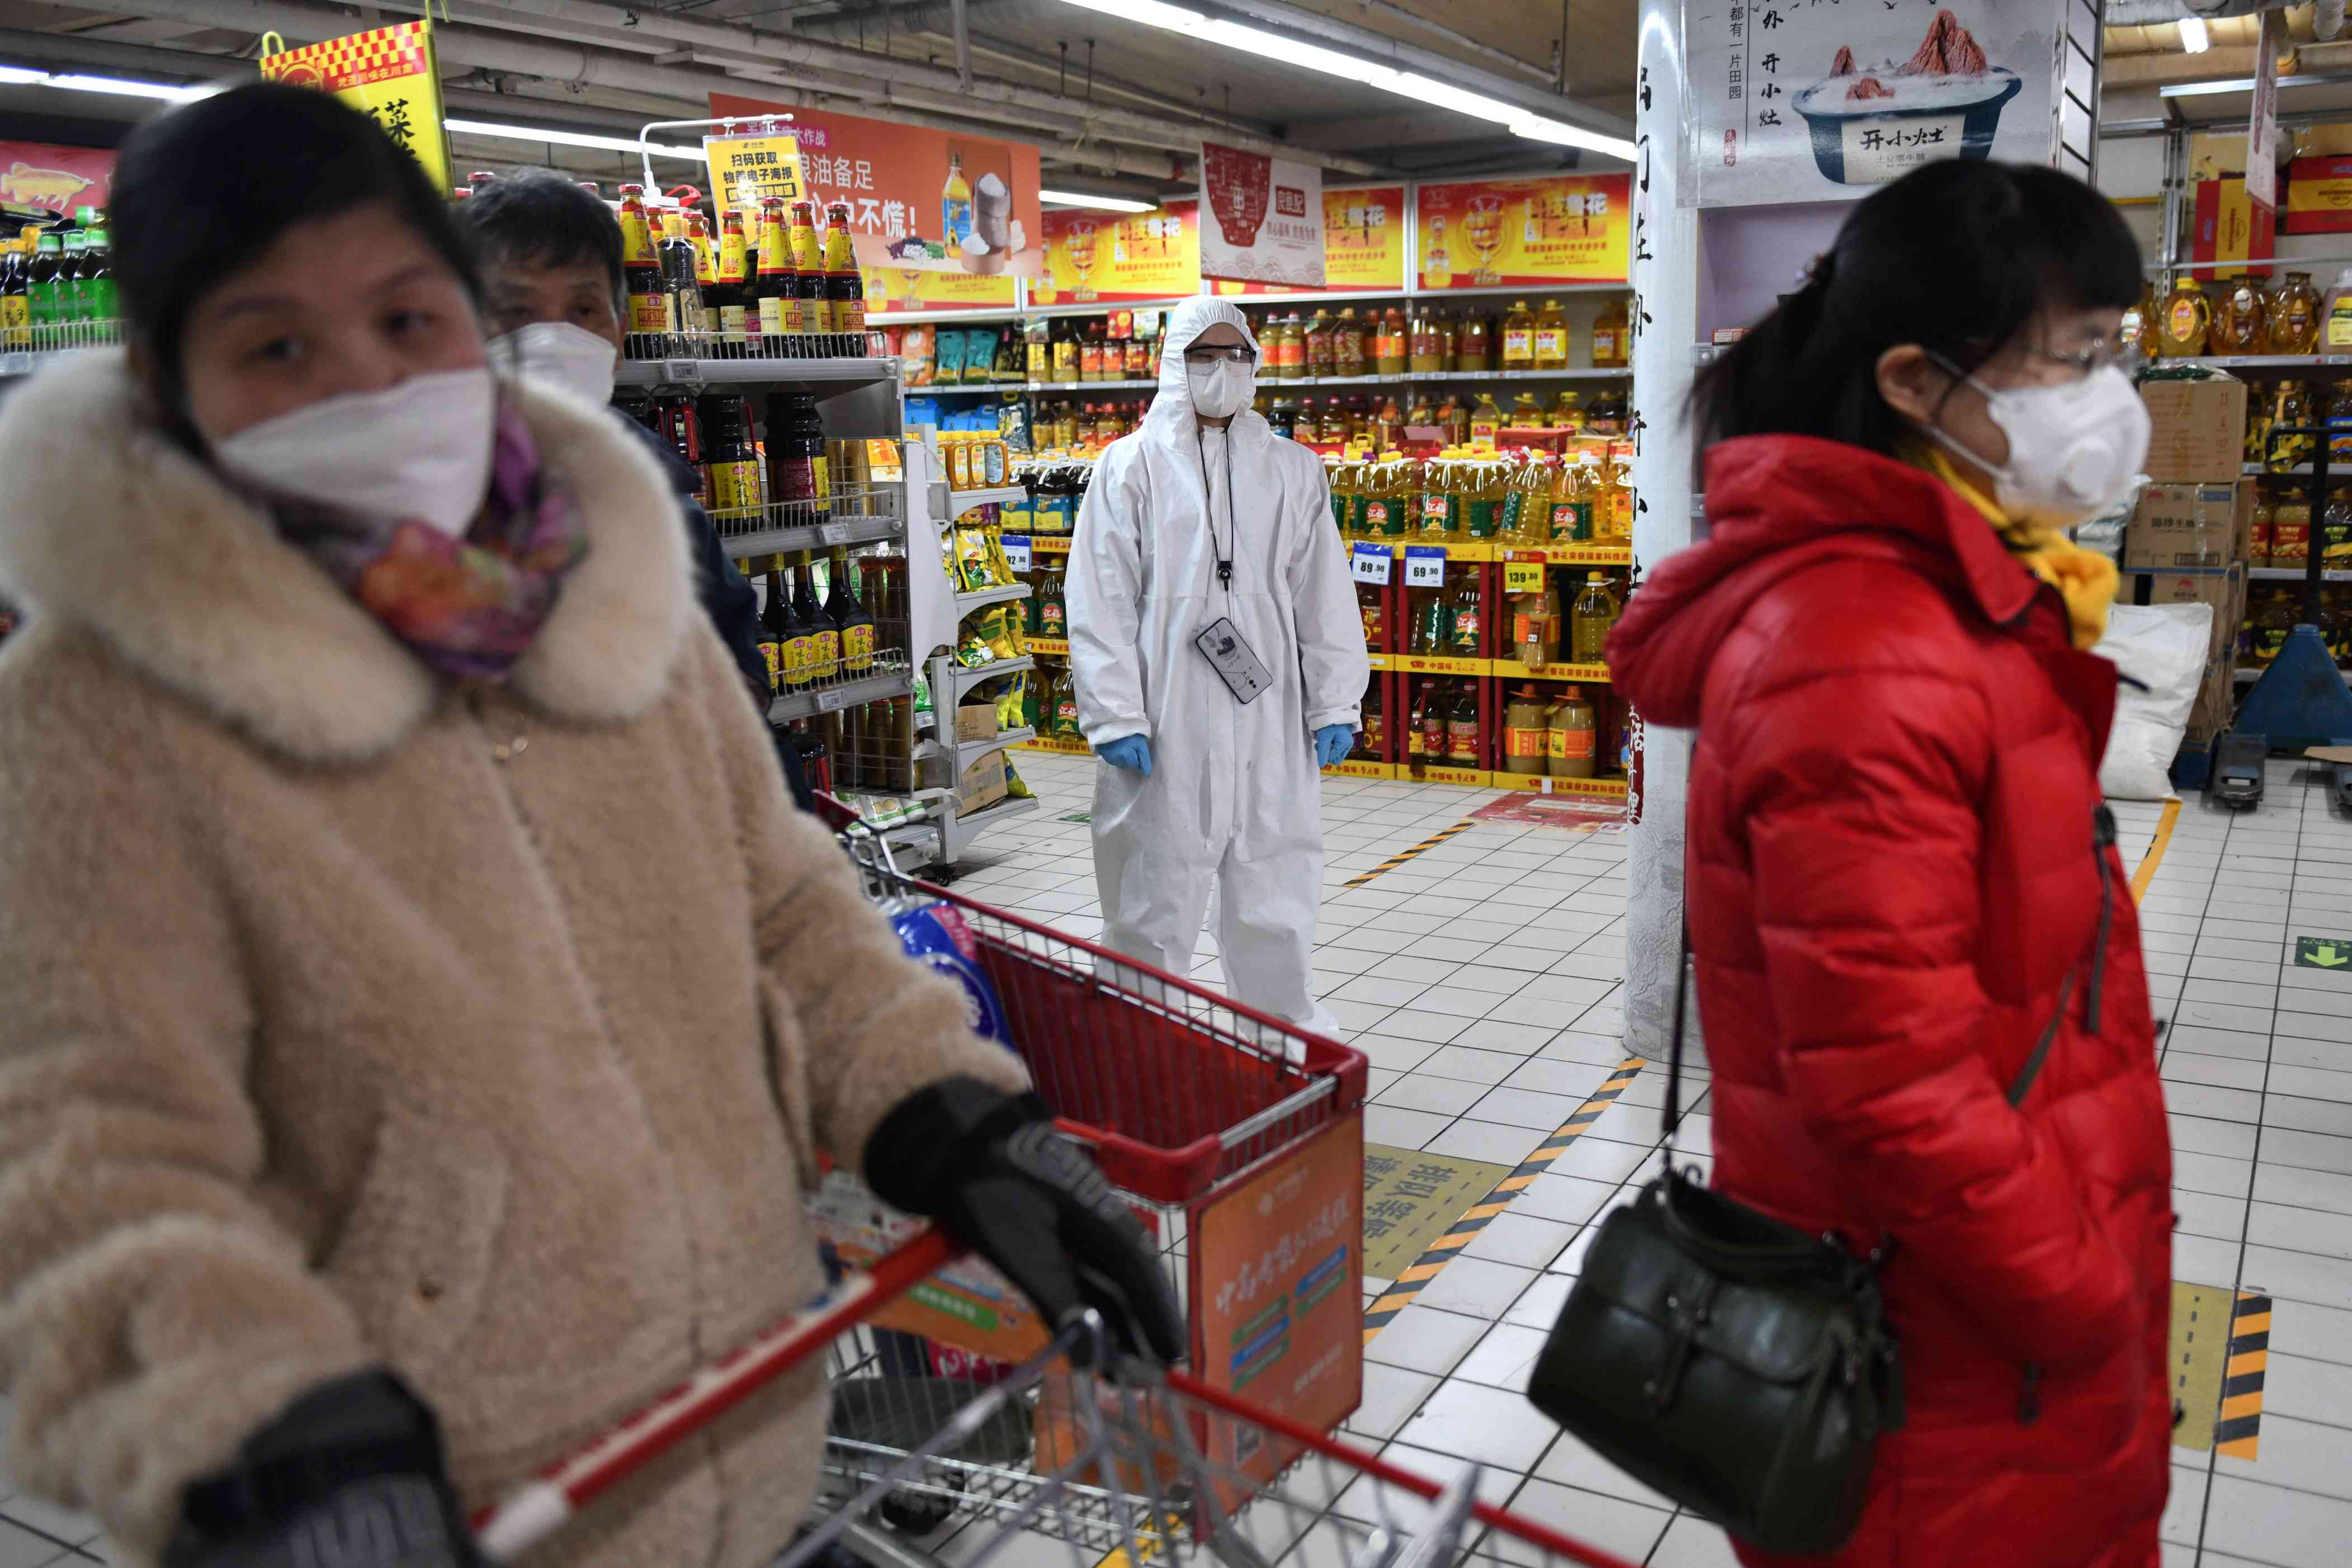 Slide 91 of 113: A worker wears protective clothing as a preventive measure against the COVID-19 coronavirus as she watches over customers in a supermarket in Beijing on March 3, 2020.